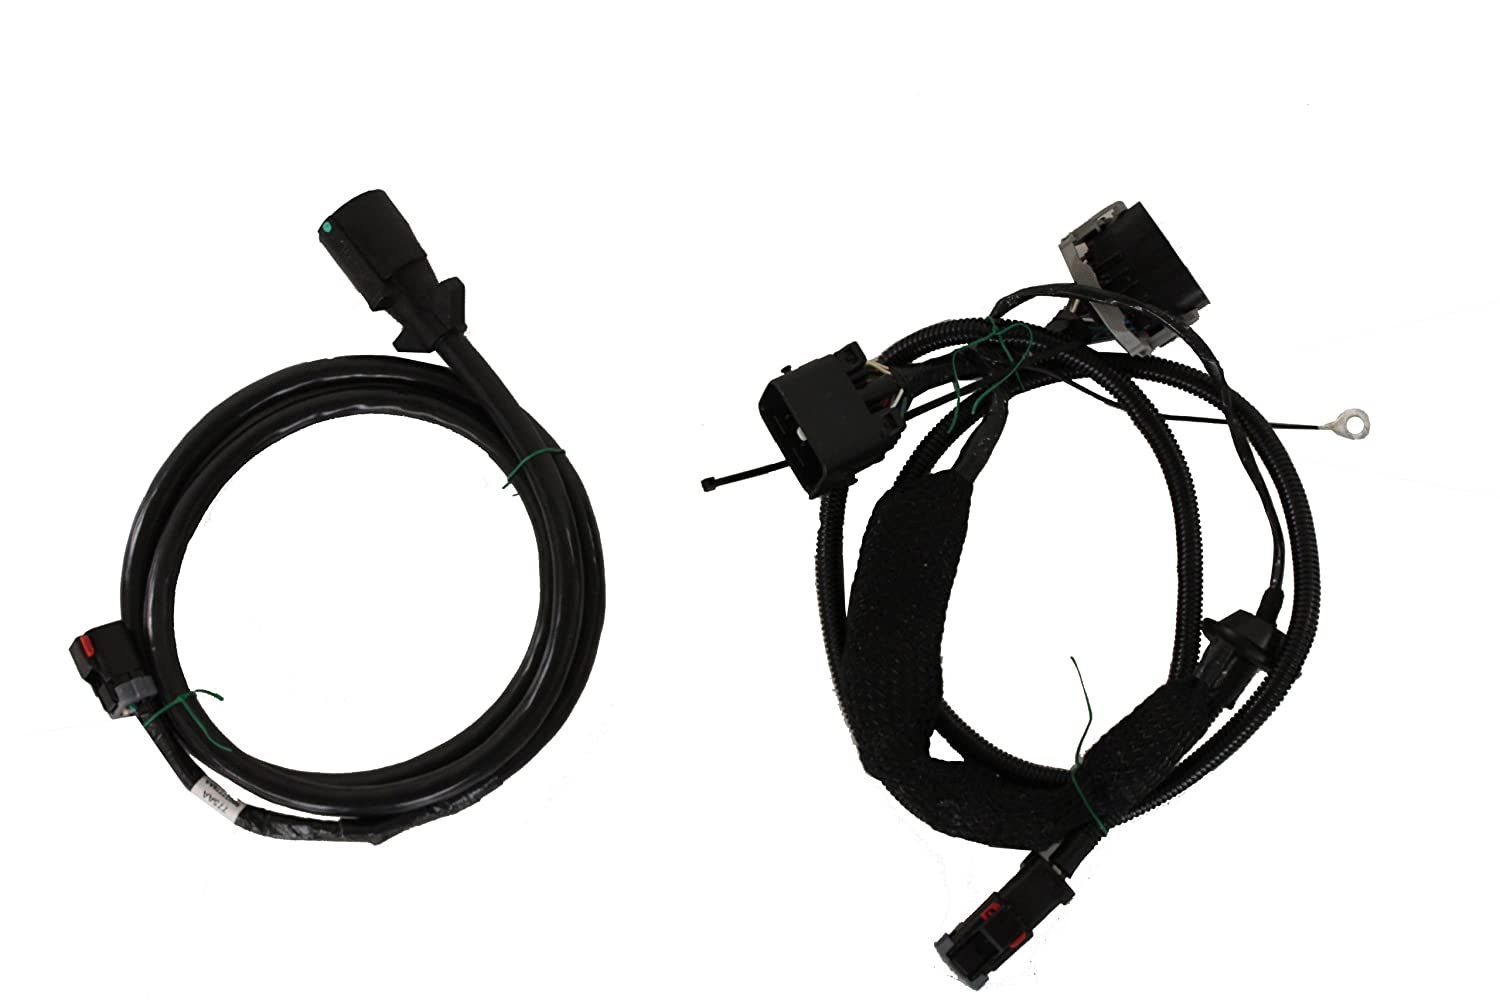 71x 3dYH2ML._SL1500_ amazon com 2007 2013 jeep wrangler tow vehicle wiring harness jeep wrangler towing wiring harness at honlapkeszites.co